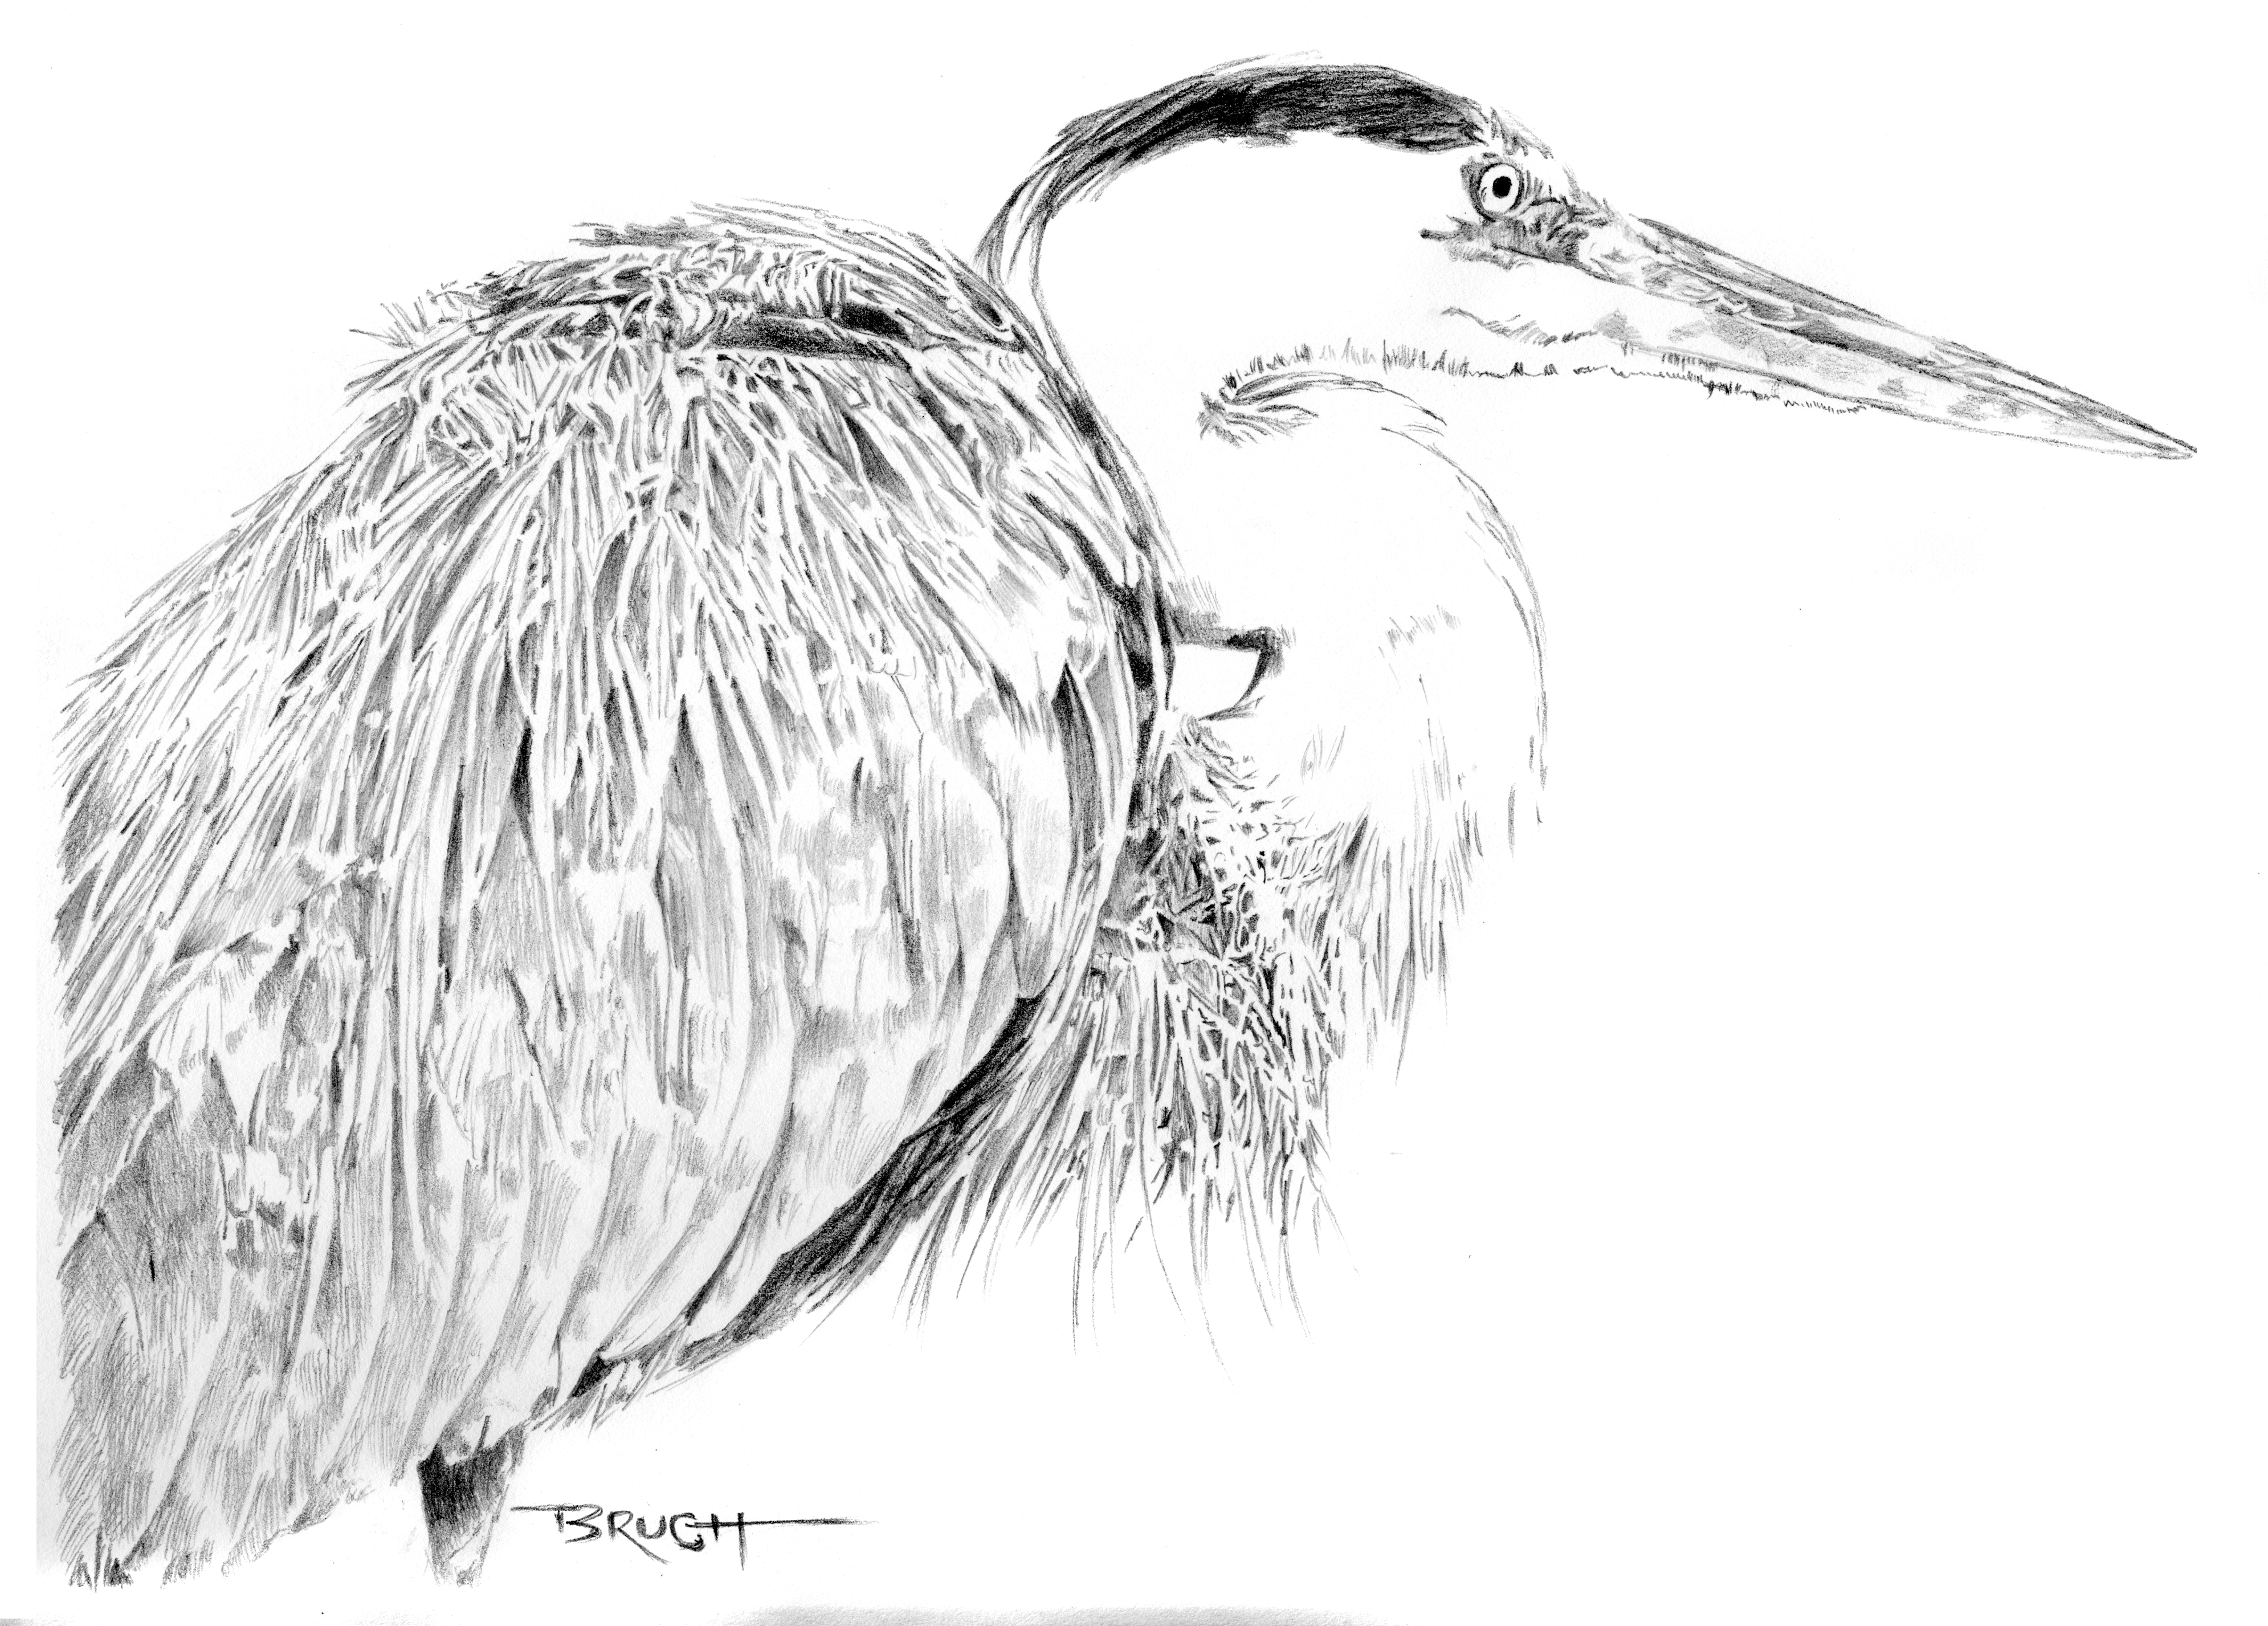 Day 29 - Great Blue Heron - graphite sketch by artist Michael Brugh